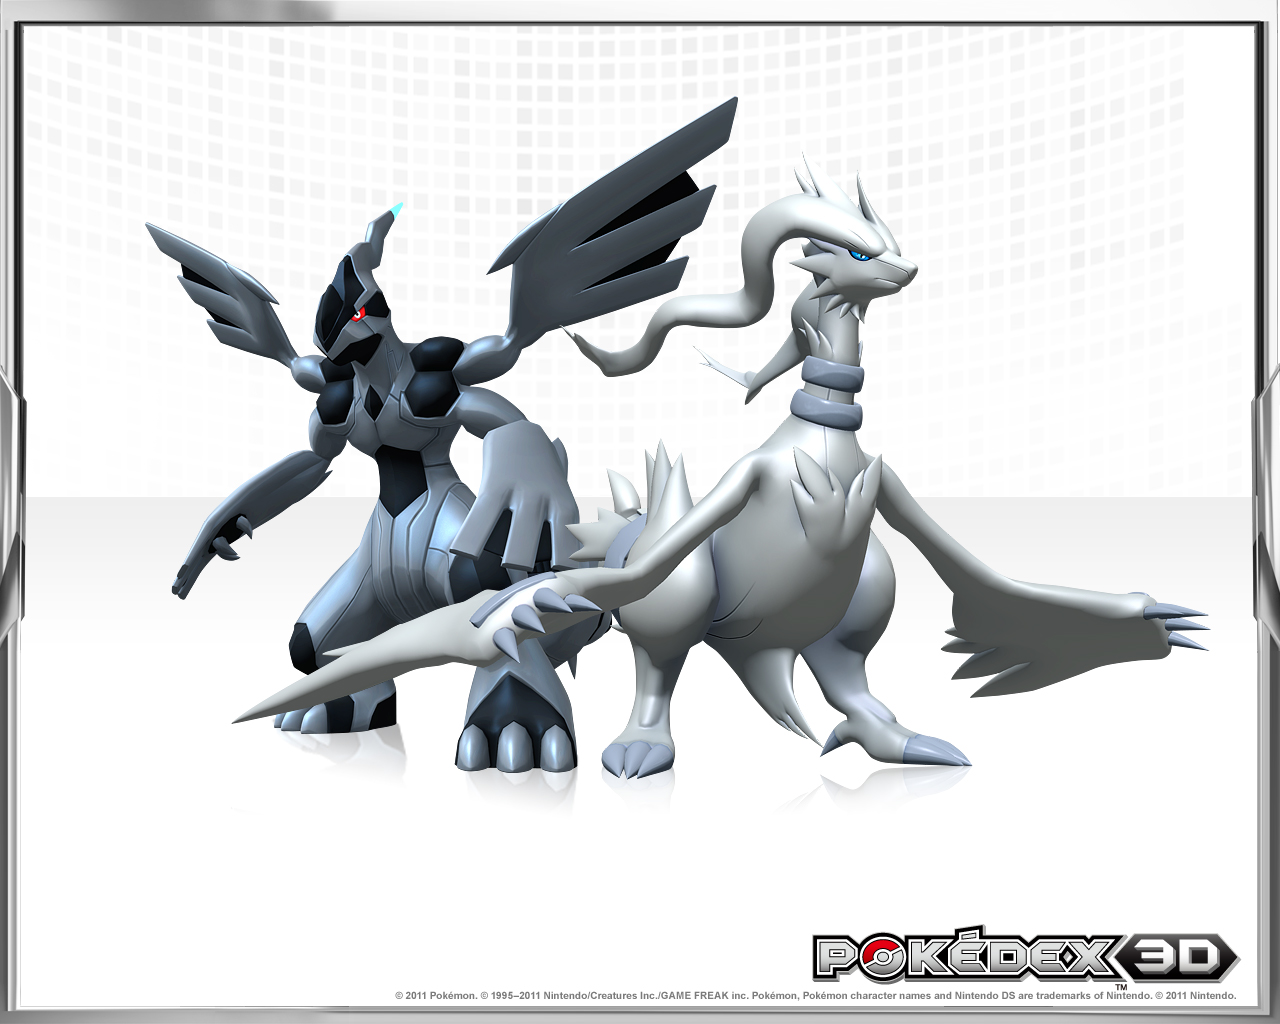 Pokedex 3D Legendary Pokemon Wallpaper